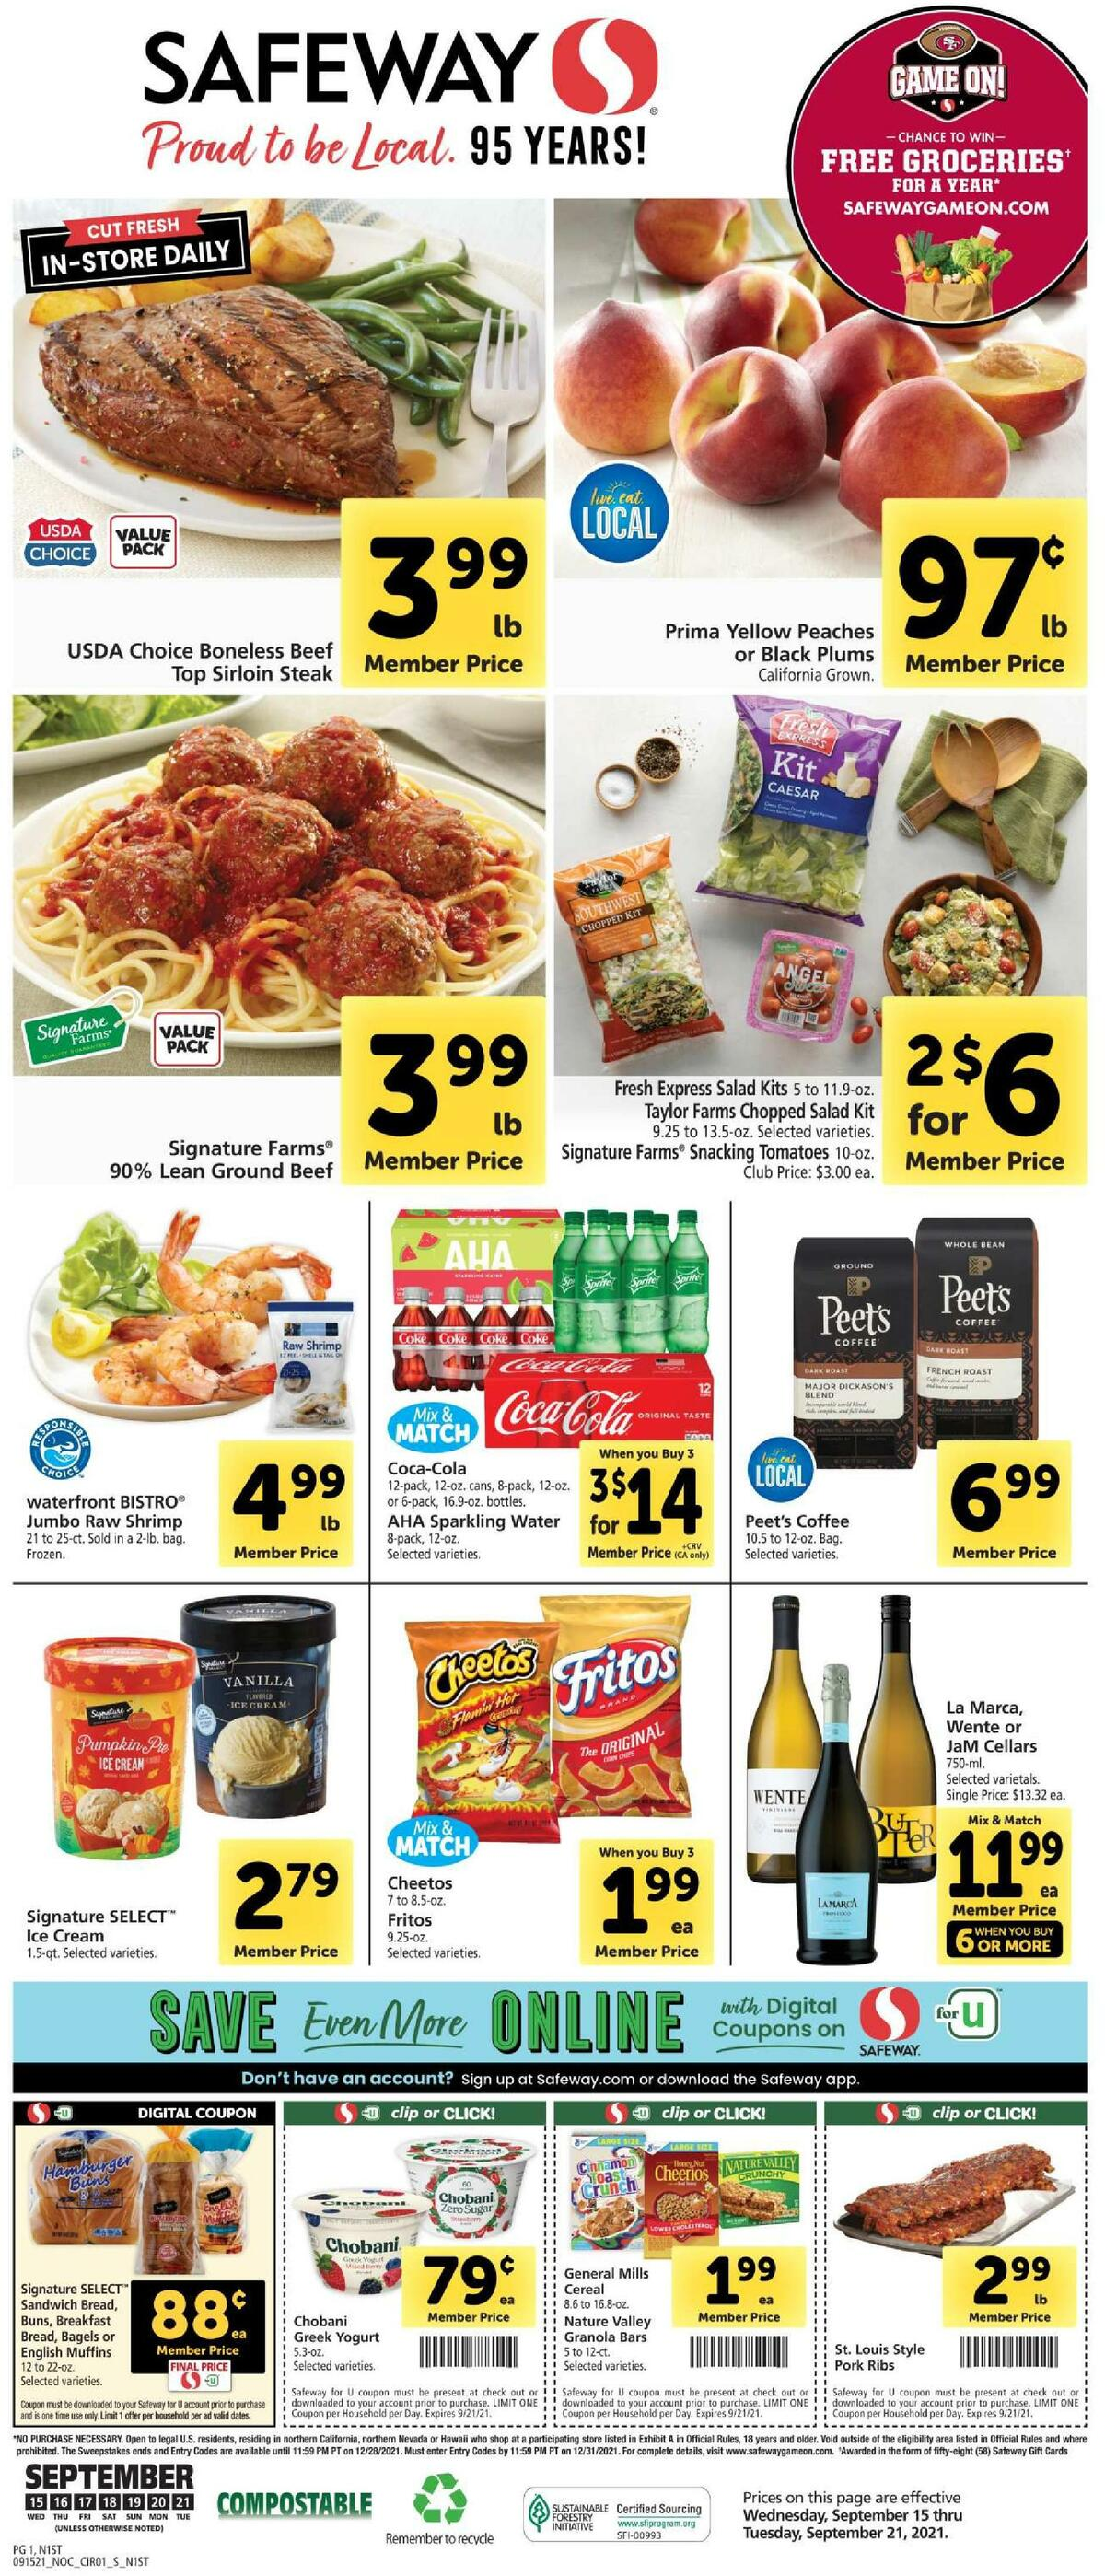 Safeway Weekly Ad from September 15